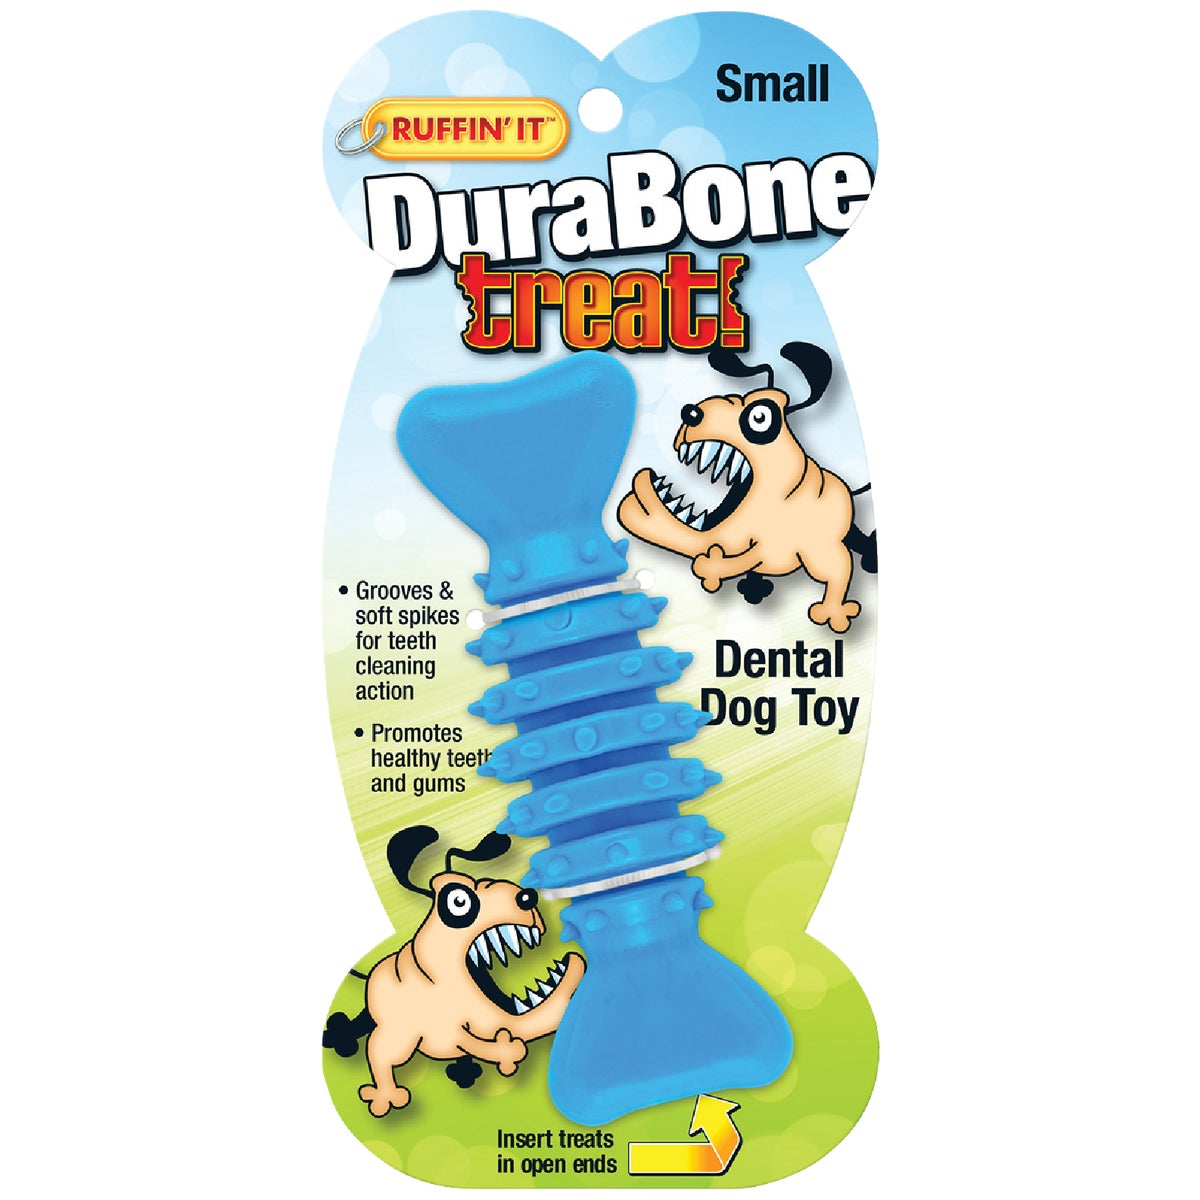 DURABONE DENTAL DOG TOY - 80506 by Westminster Pet